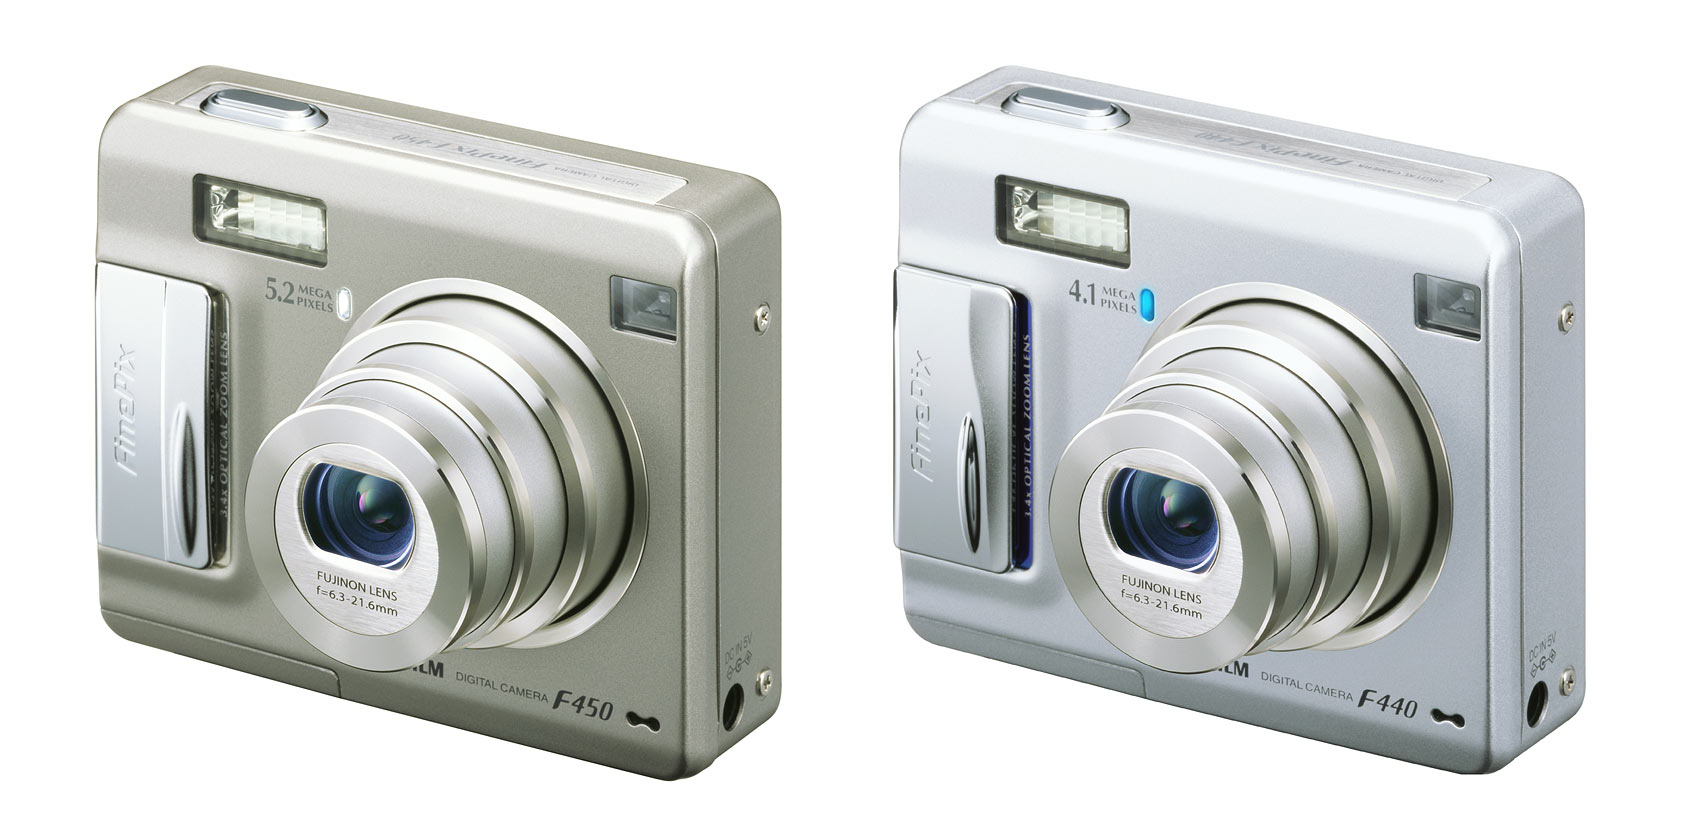 Fujifilm FinePix F440 Drivers Download